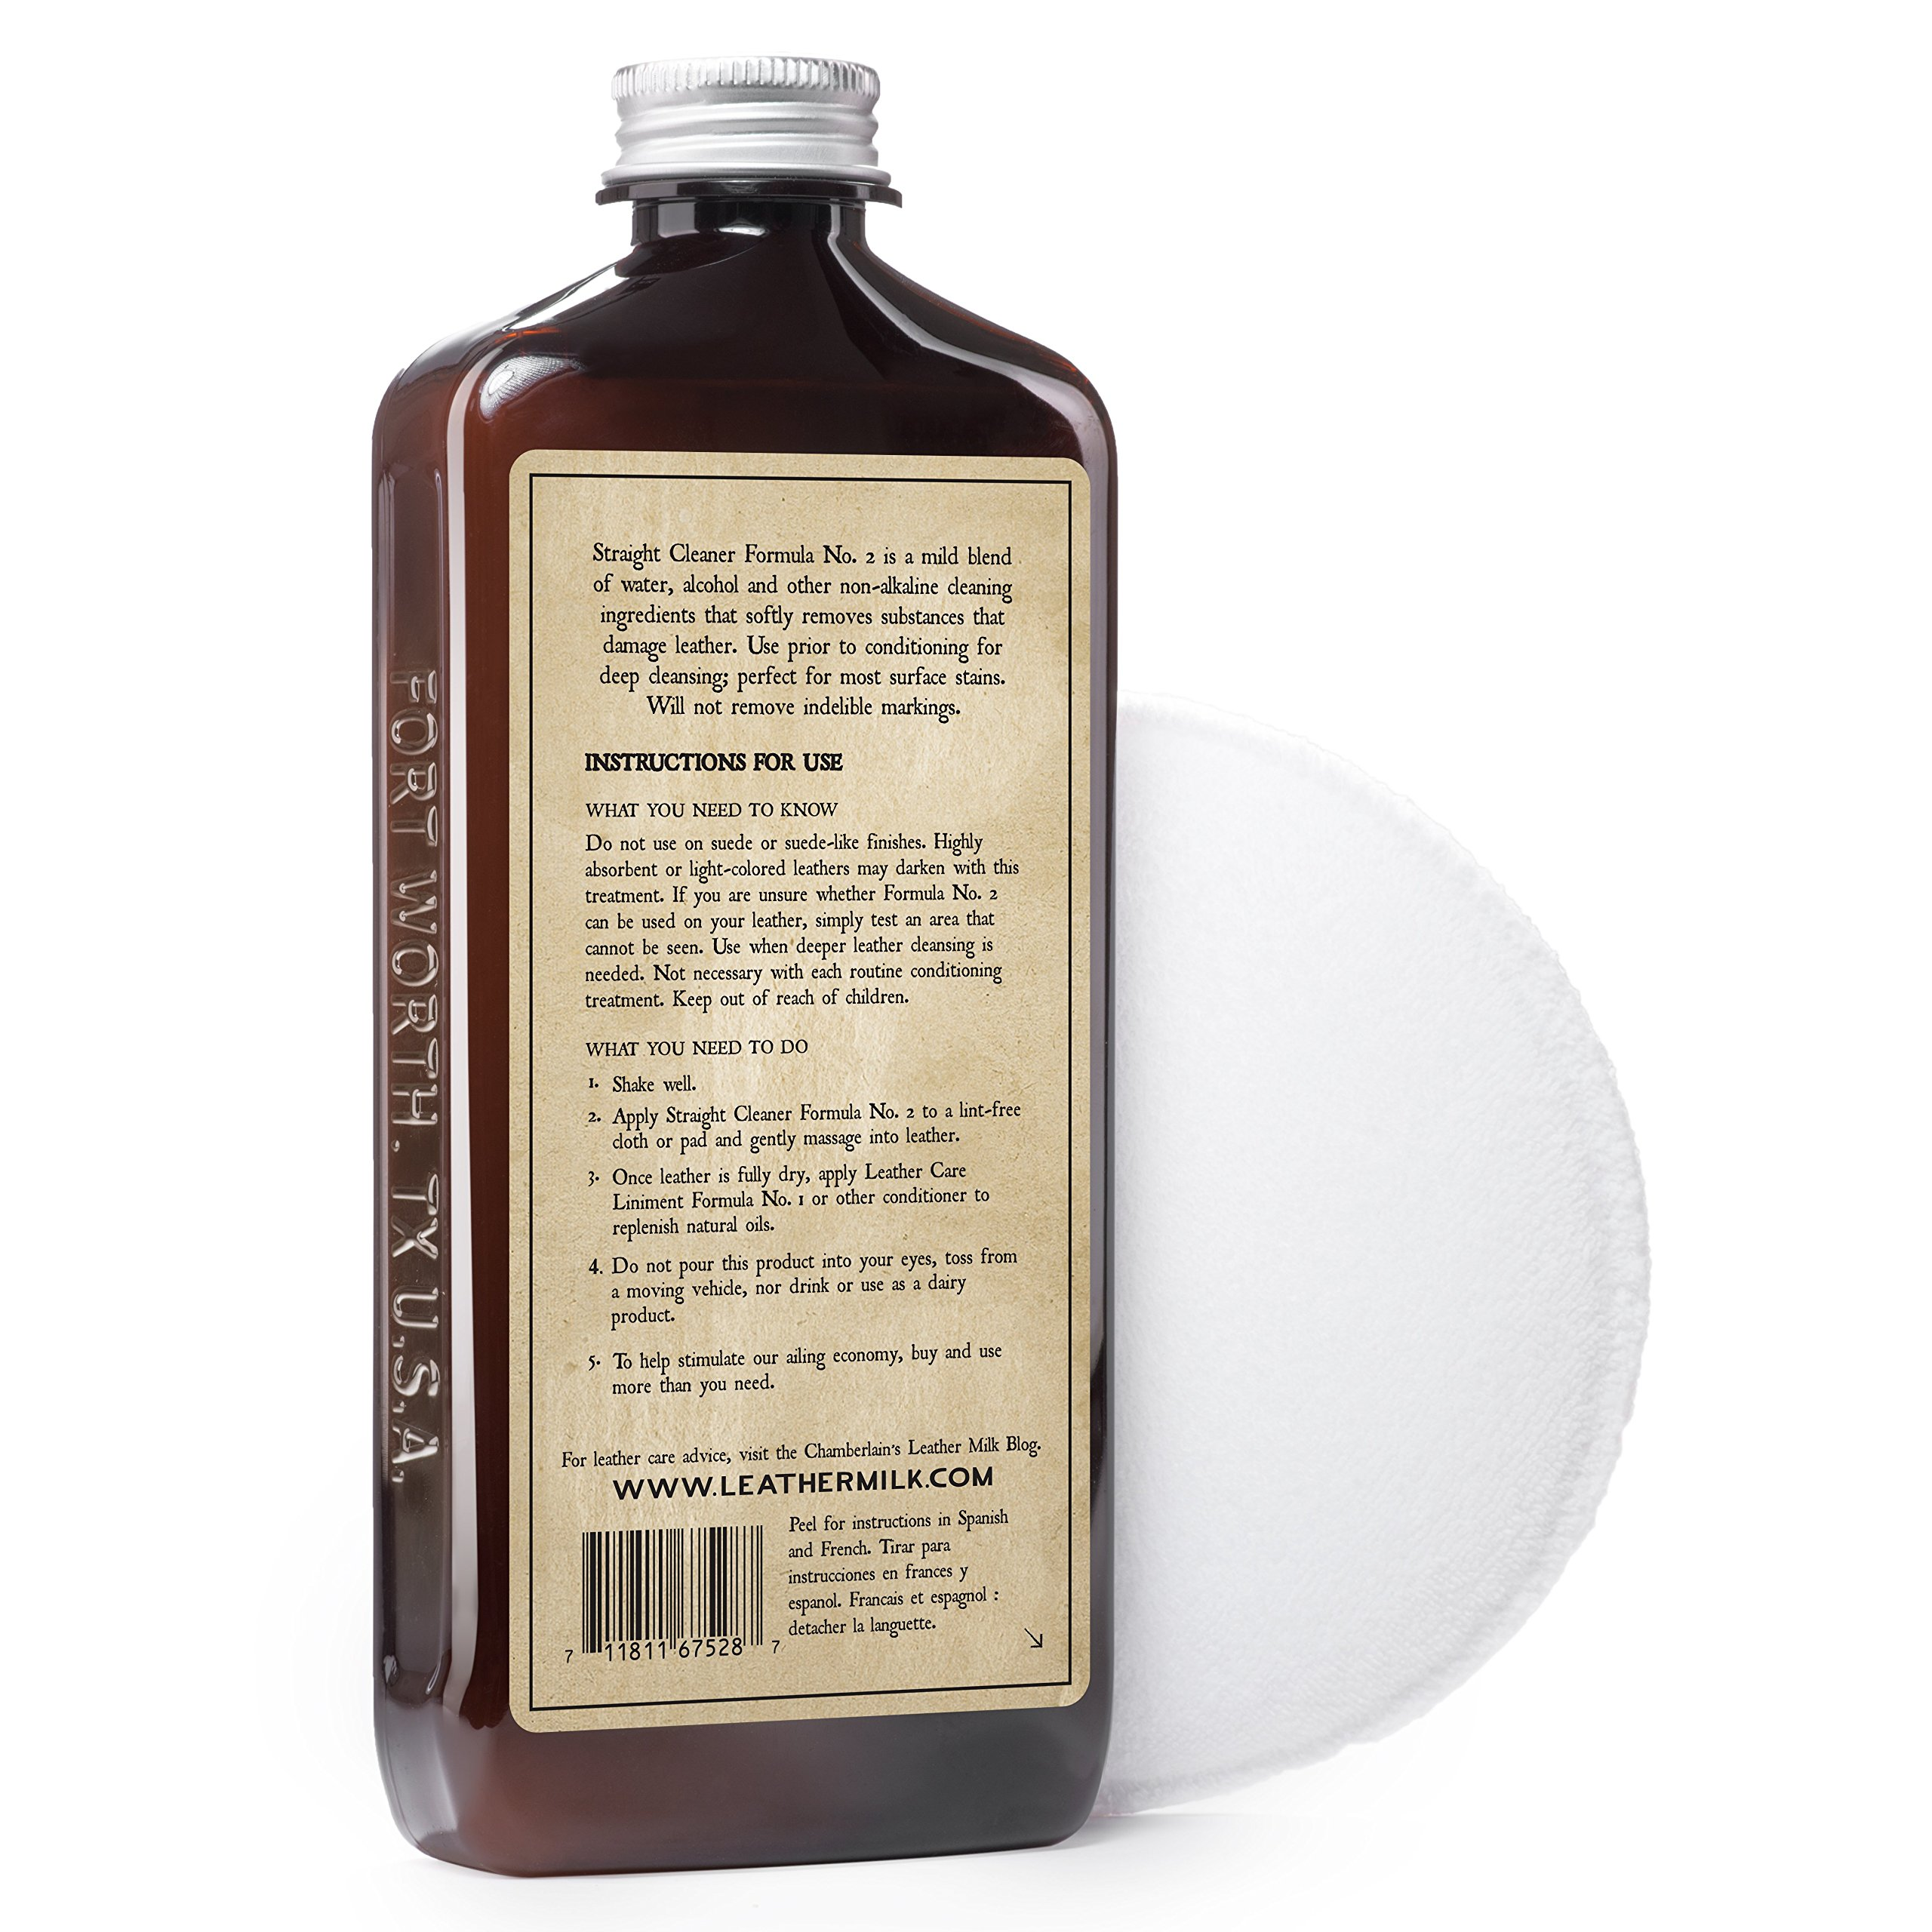 Leather Milk Auto Leather Cleaner & Conditioner Kit (2 Formula Car Detailing Set) - Straight Cleaner No. 2 + Auto Refreshener No. 4 - All Natural, Non-Toxic. Made in USA. Includes 2 Detailing Pads! by Chamberlain's Leather Milk (Image #5)